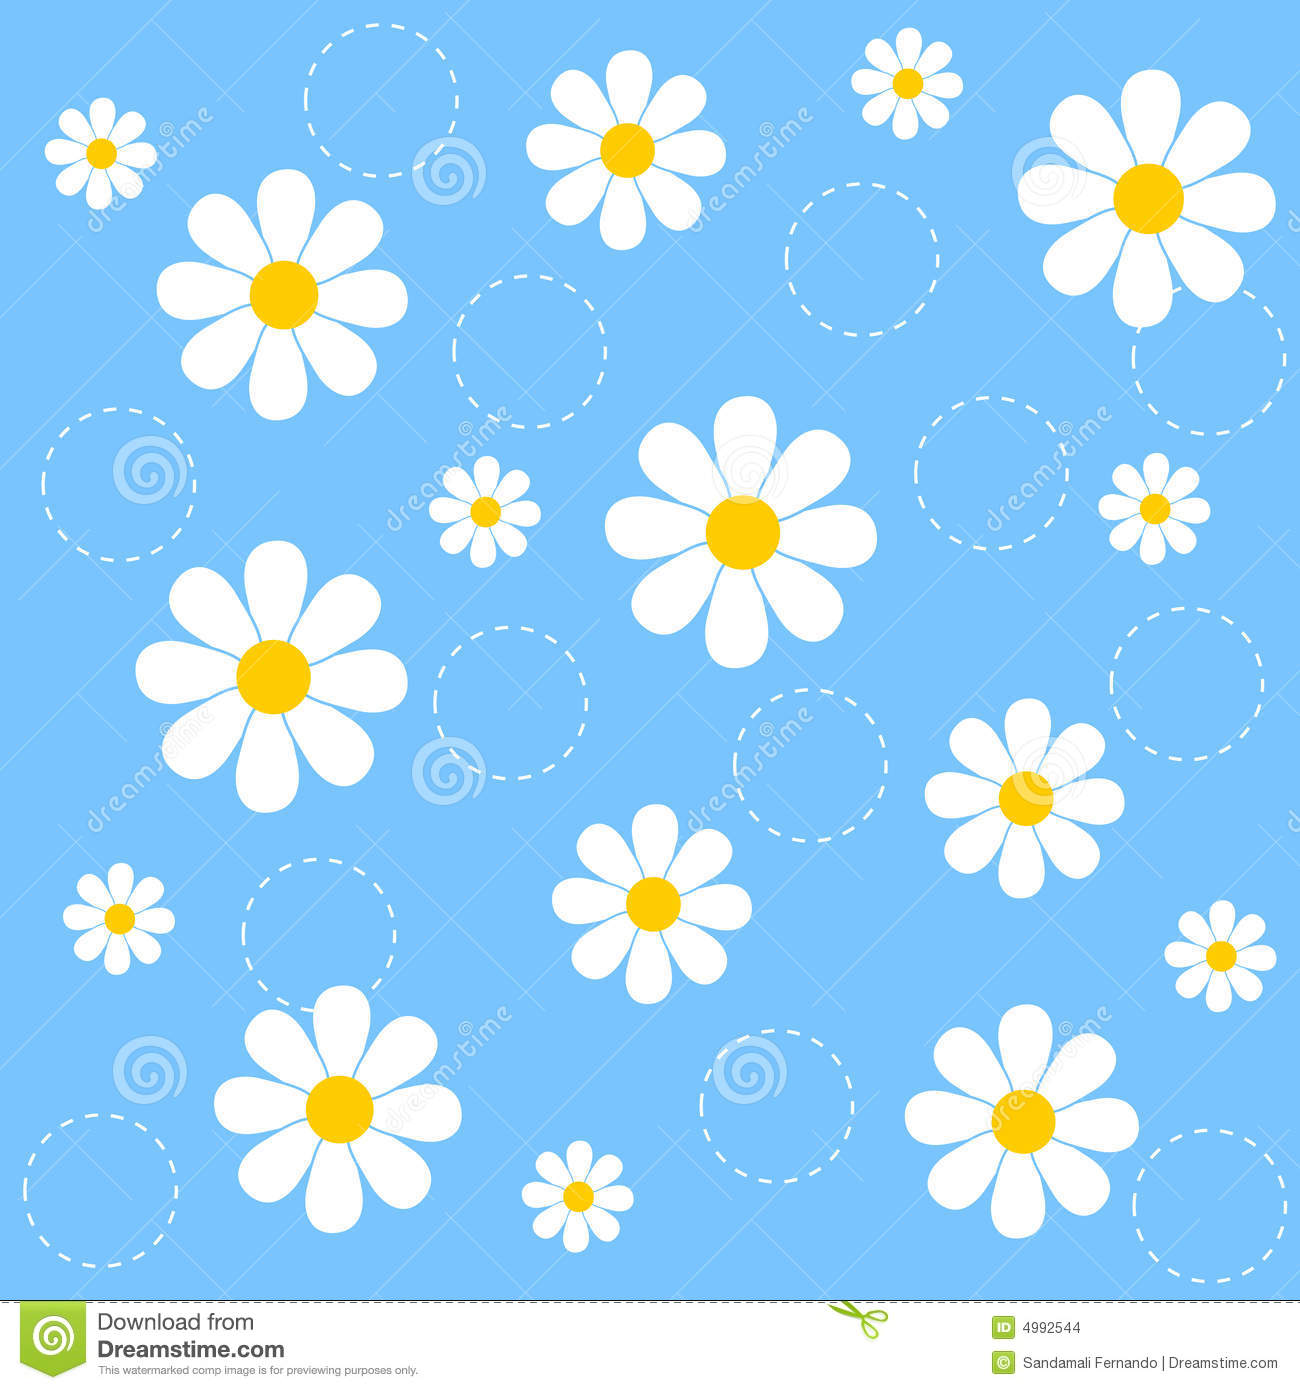 Floral Seamless Pattern Stock Vector. Illustration Of